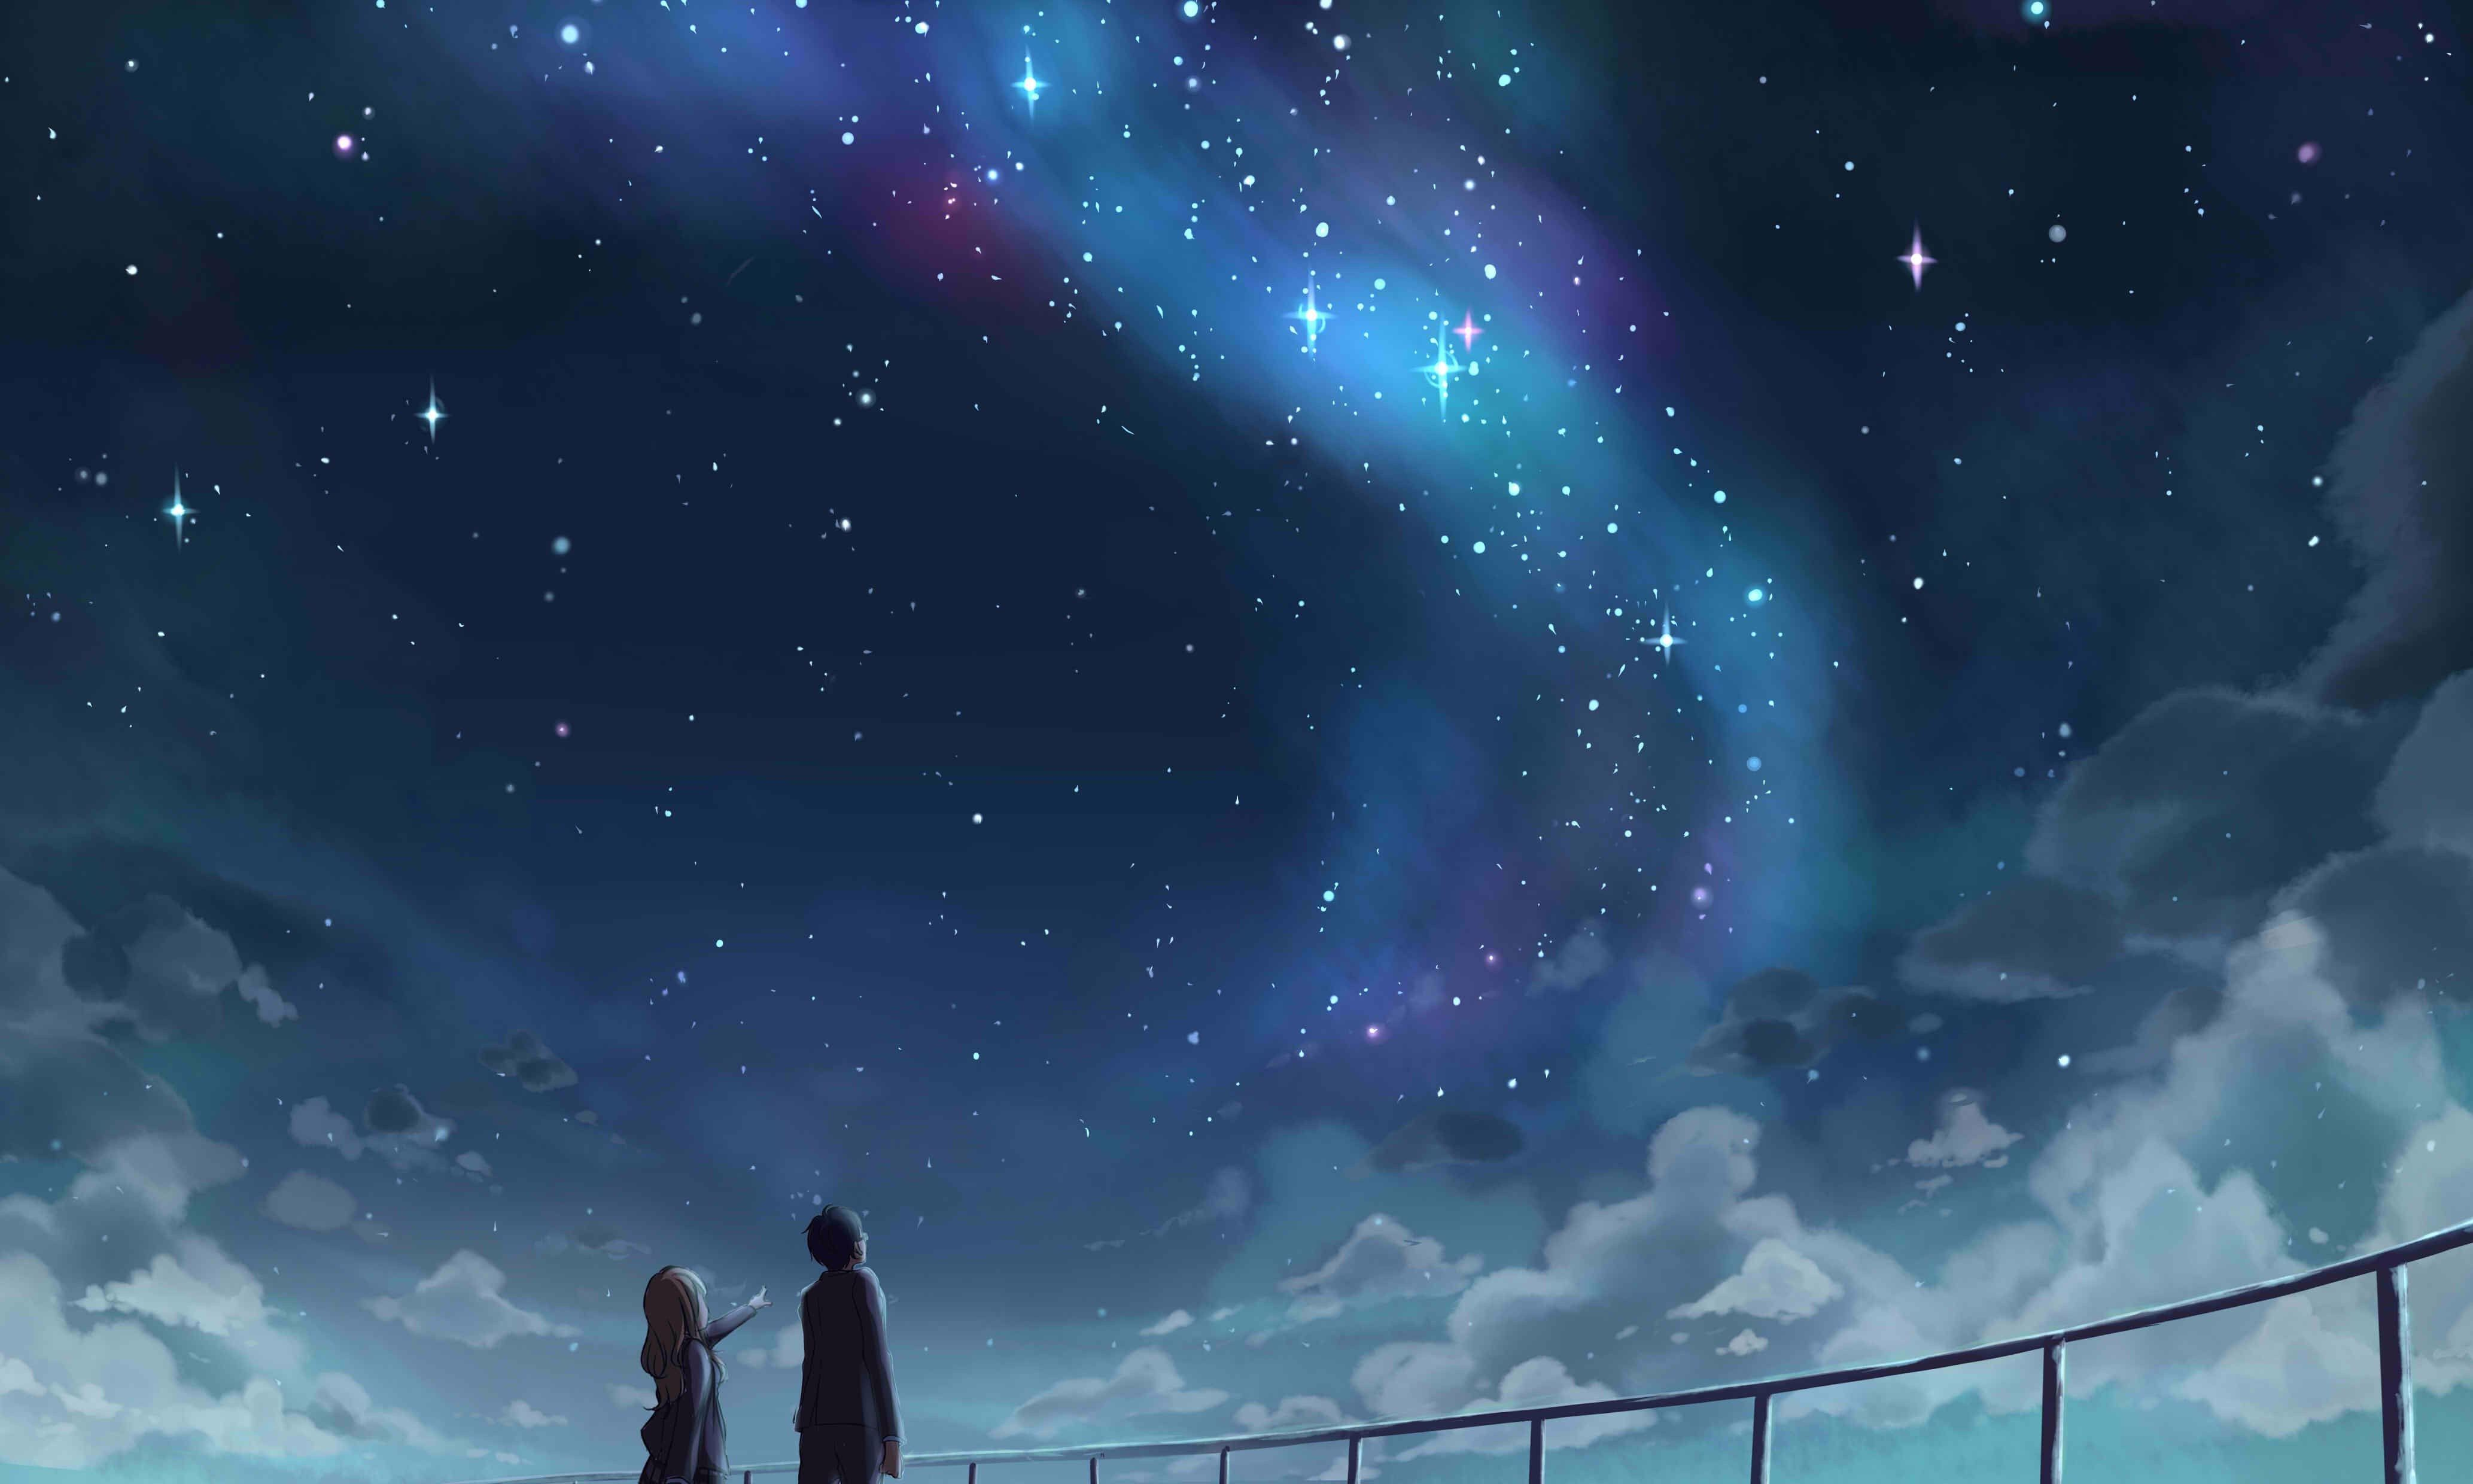 Pin By Lily Blue On Anime Art In 2020 Your Lie In April Sky Anime Aesthetic Anime